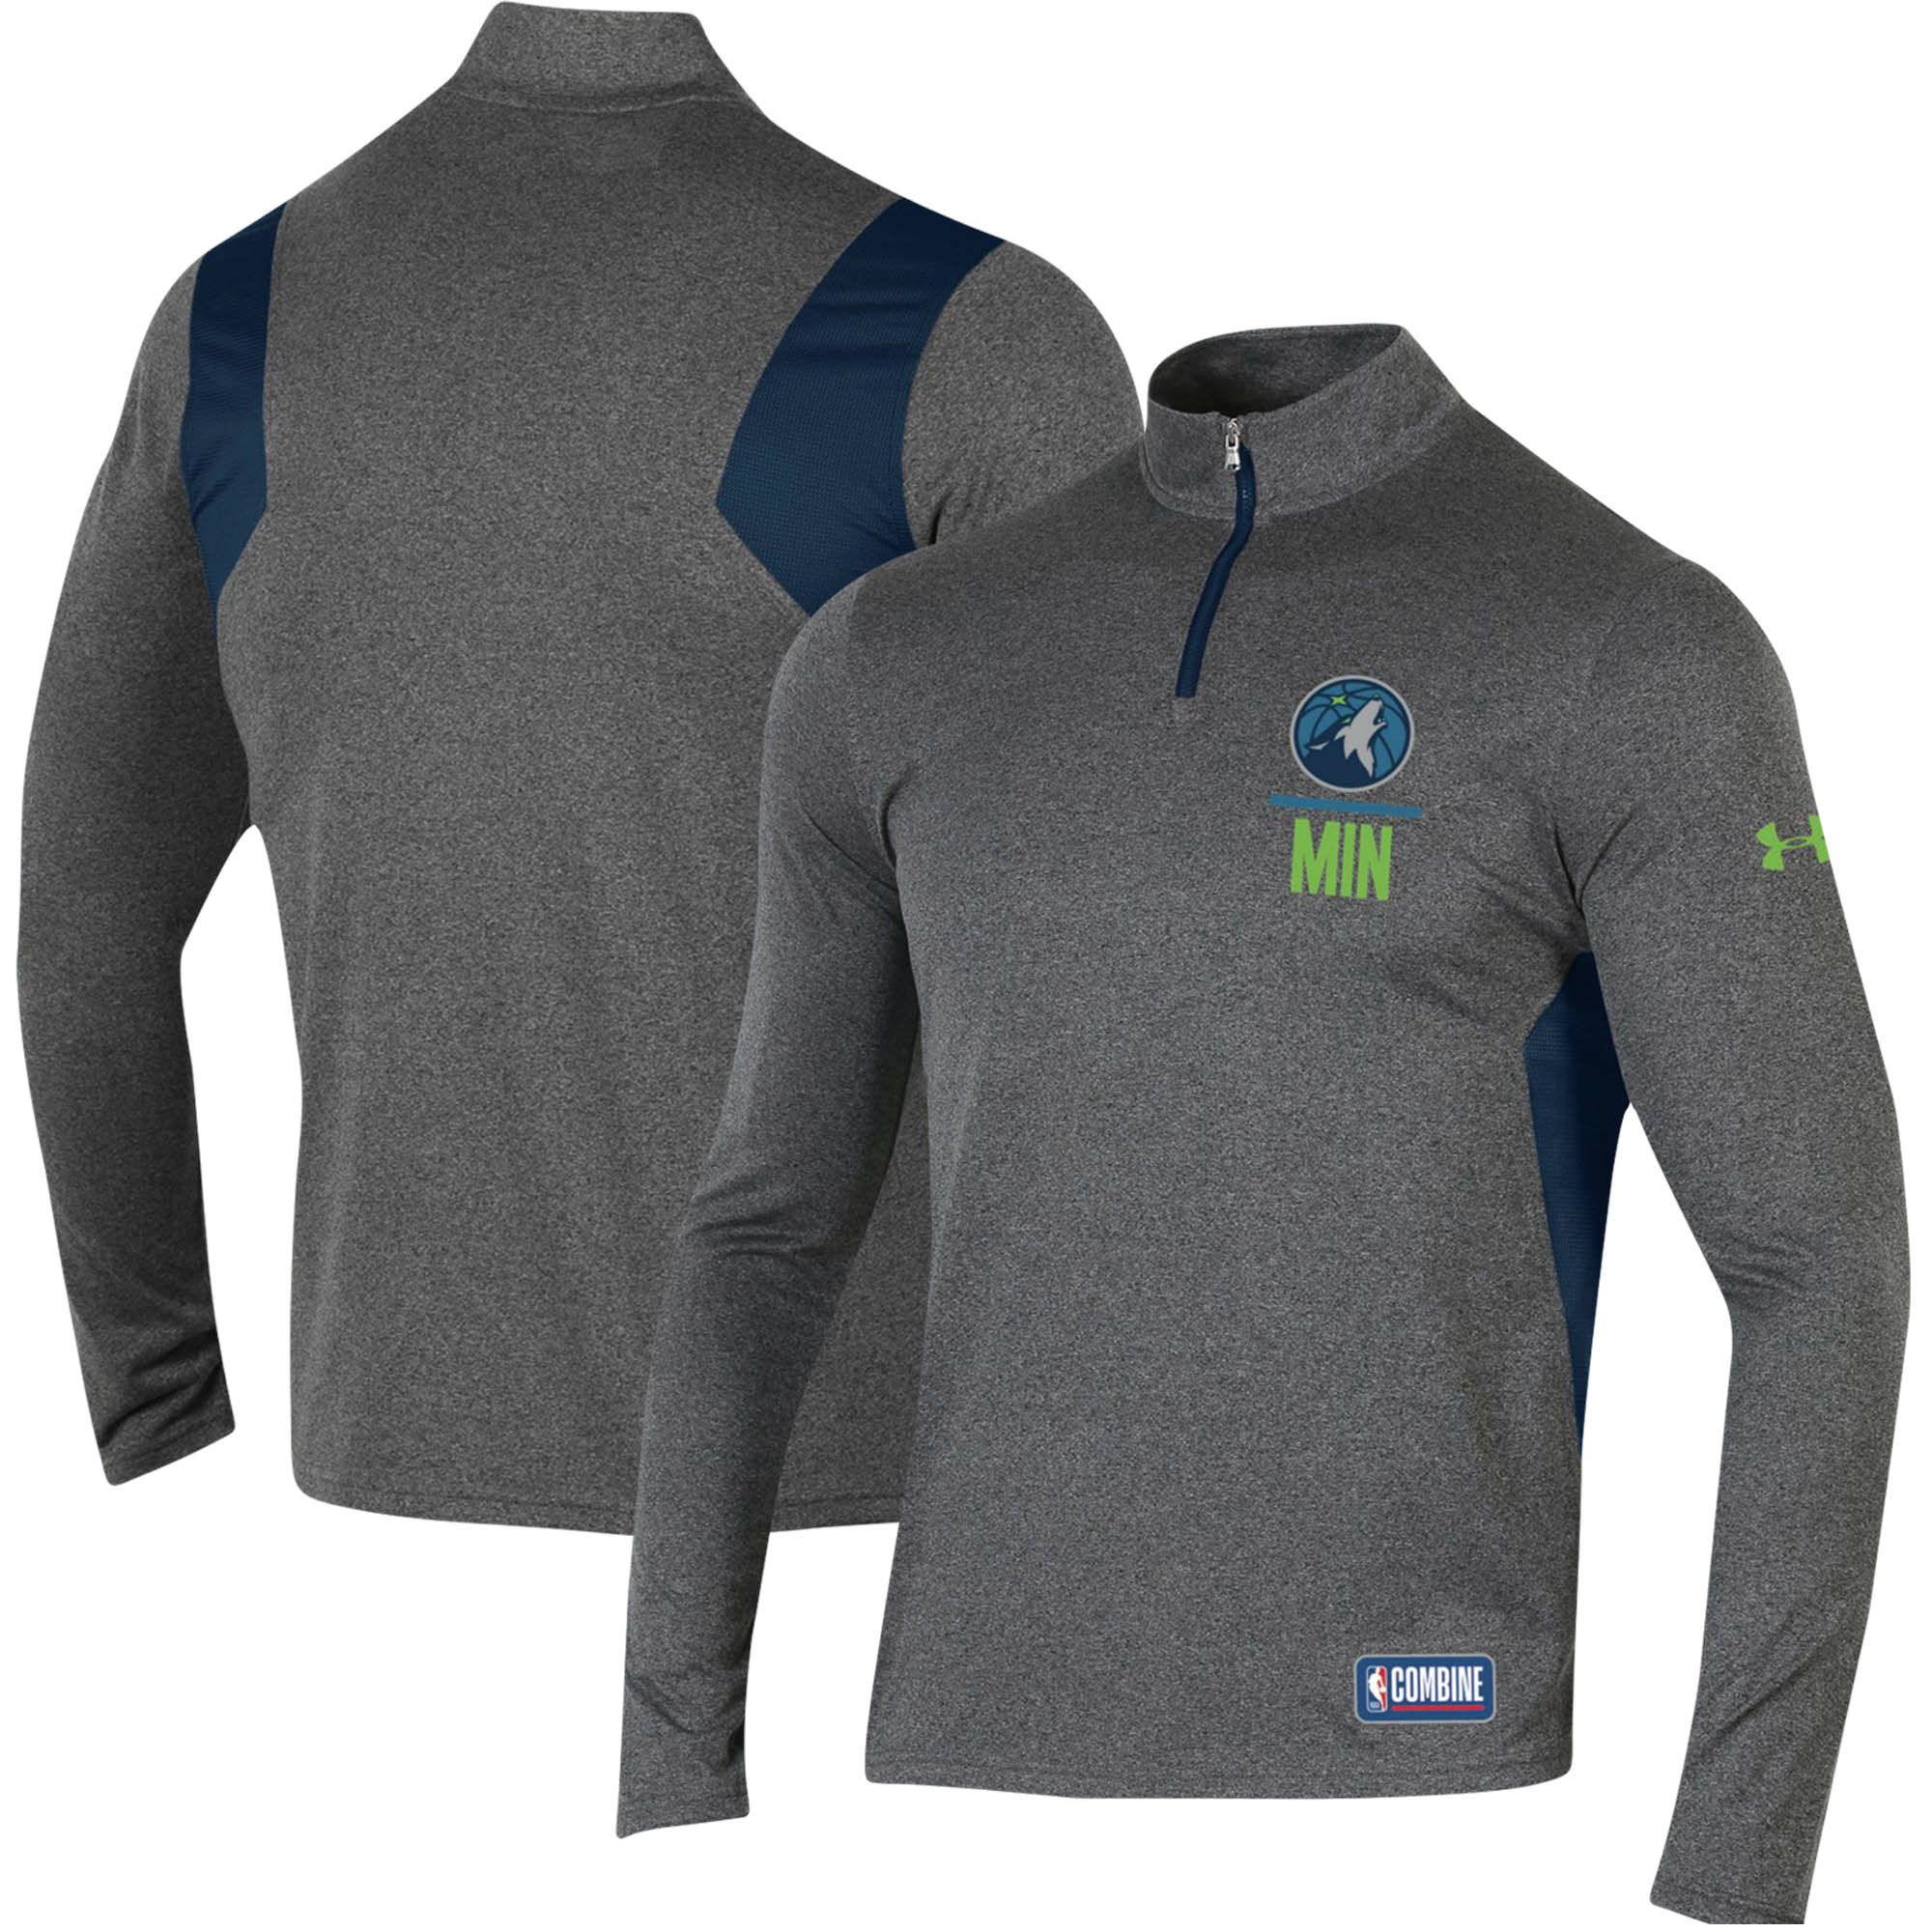 Minnesota Timberwolves Under Armour Combine Authentic Season Tech Quarter-Zip Pullover Jacket - Heathered Charcoal